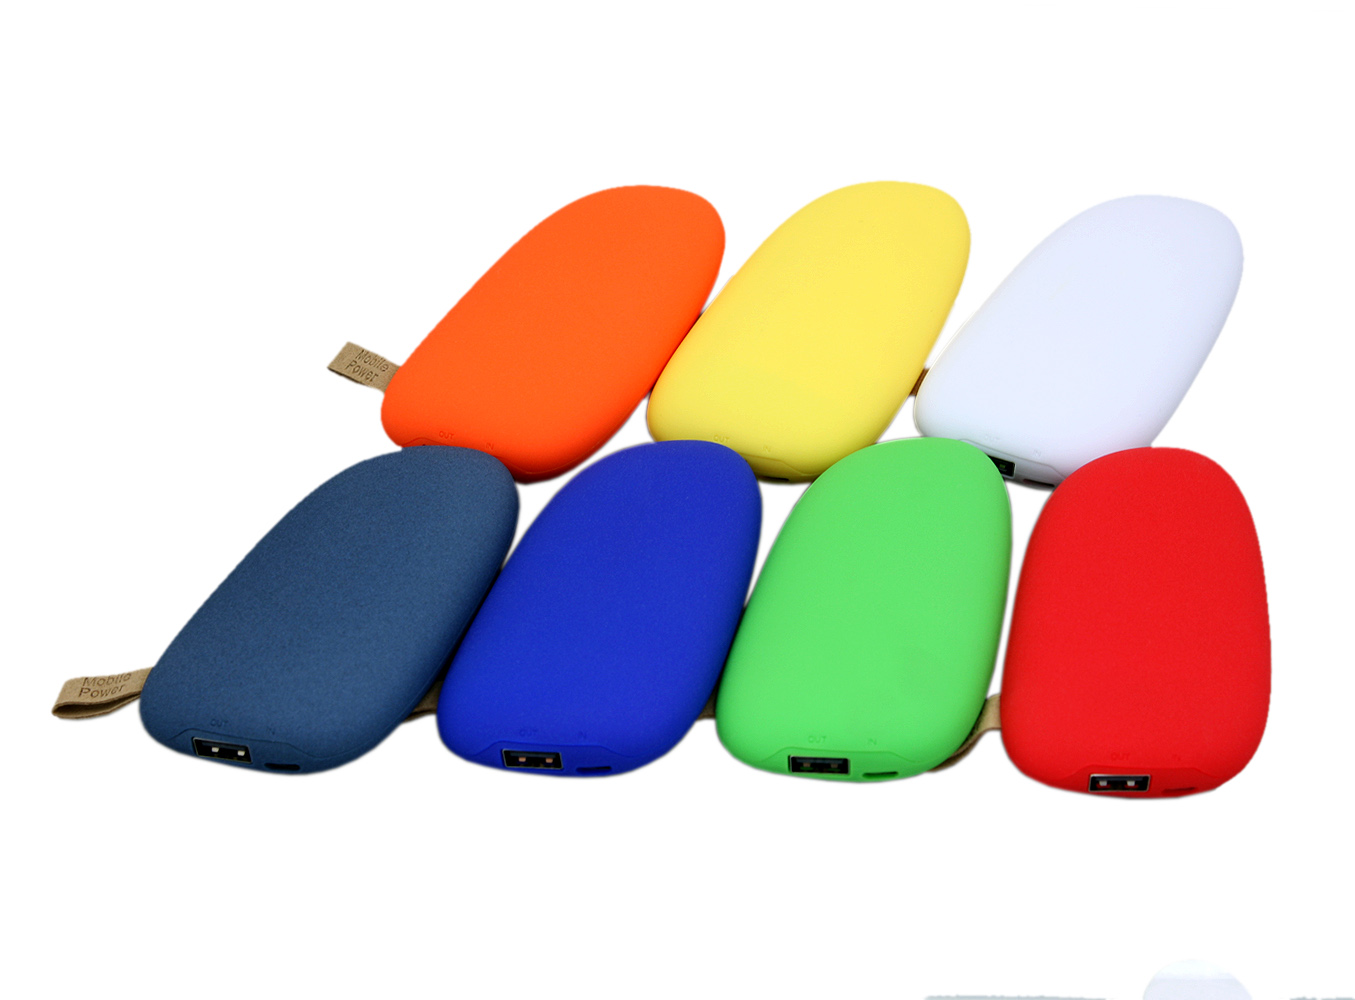 Power Bank Large Stone PB014 оптом